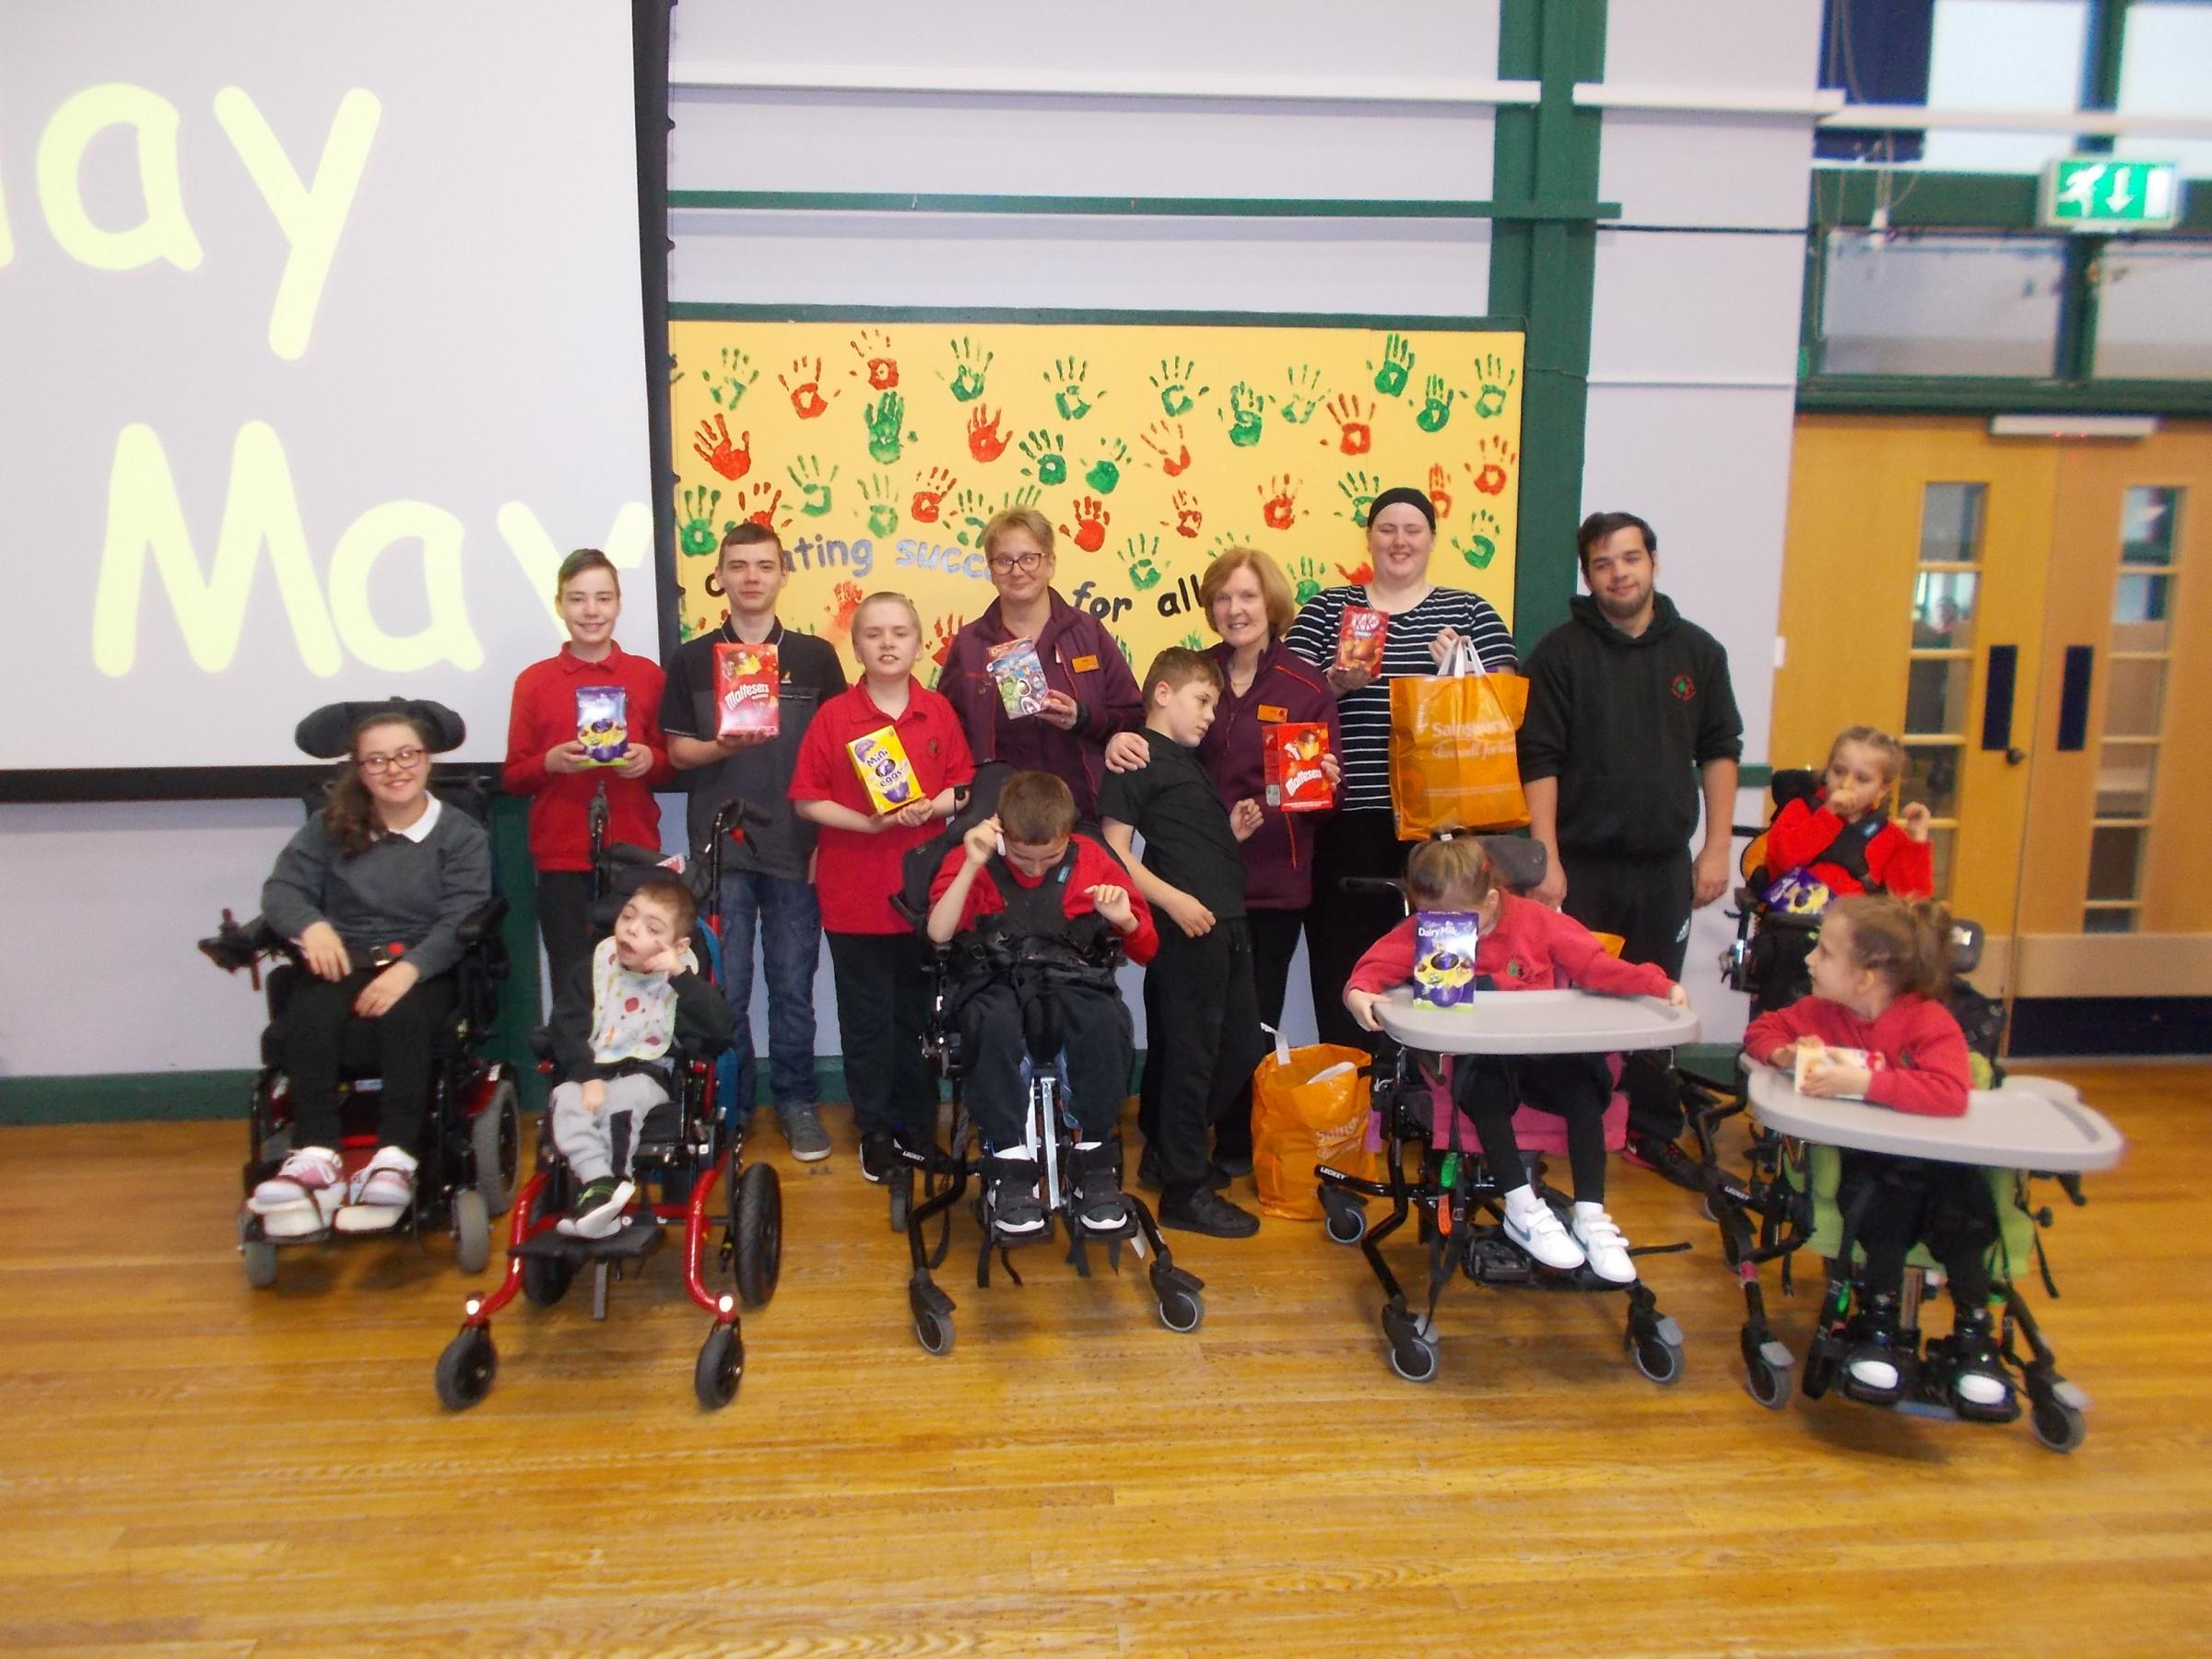 Pontllanfraith Sainsbury's donate eggs to Trinity Fields special needs school. Pictured are Linda Korczynski and Sally Grandon of Pontllanfraith Sainsbury's with pupils from the school